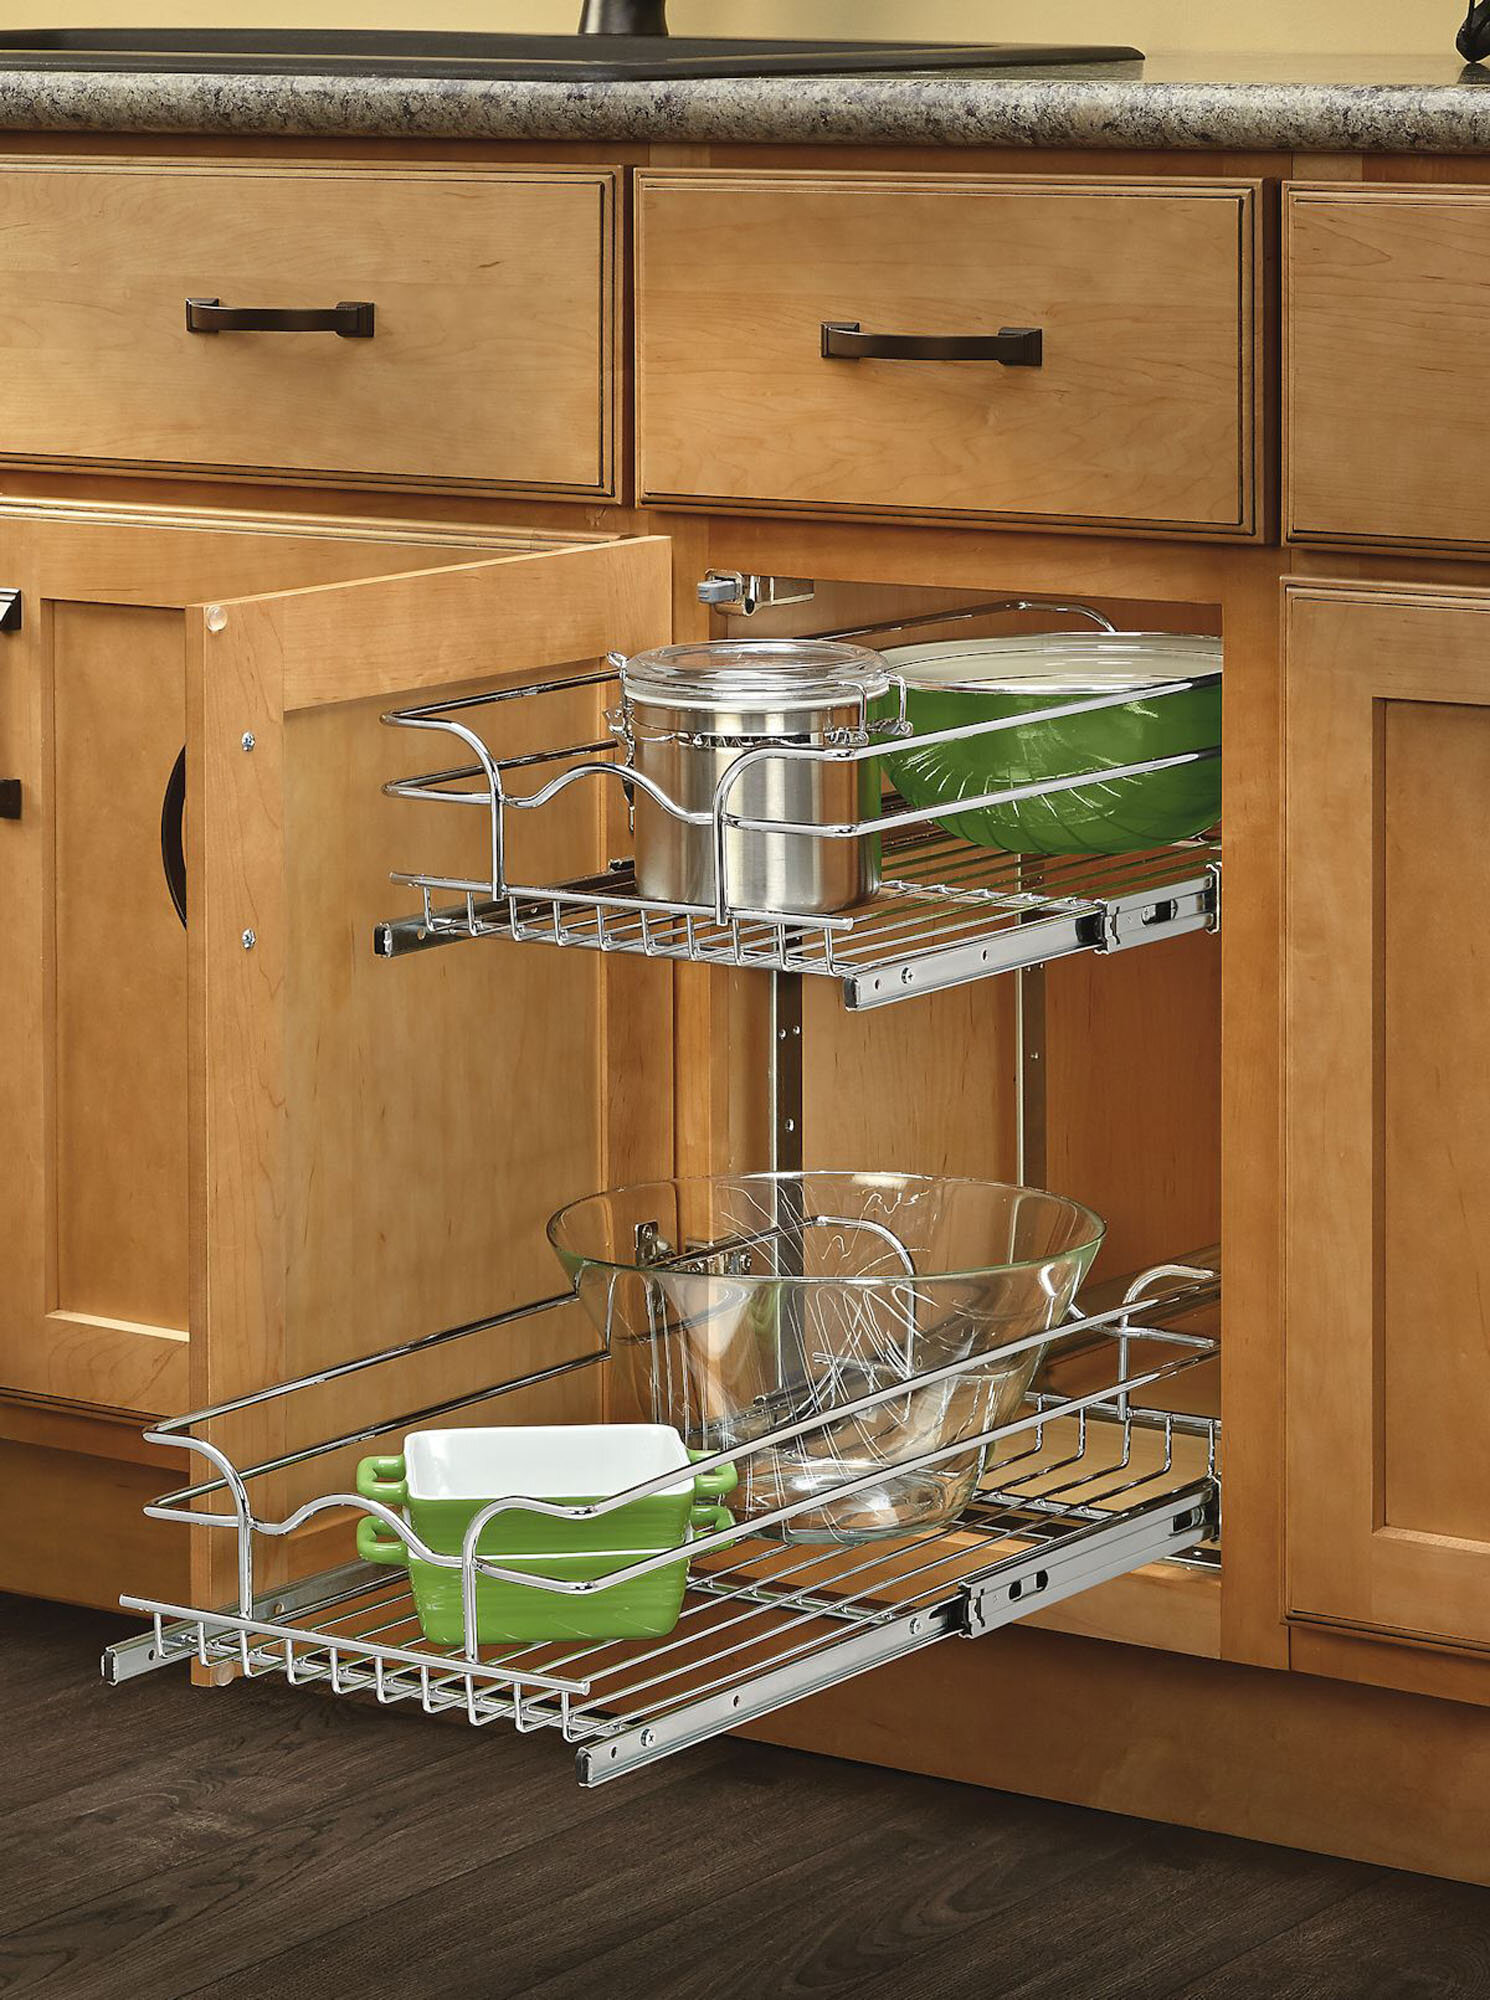 organizer cabinets organized rev by a tier two island hicks house cookware shelf